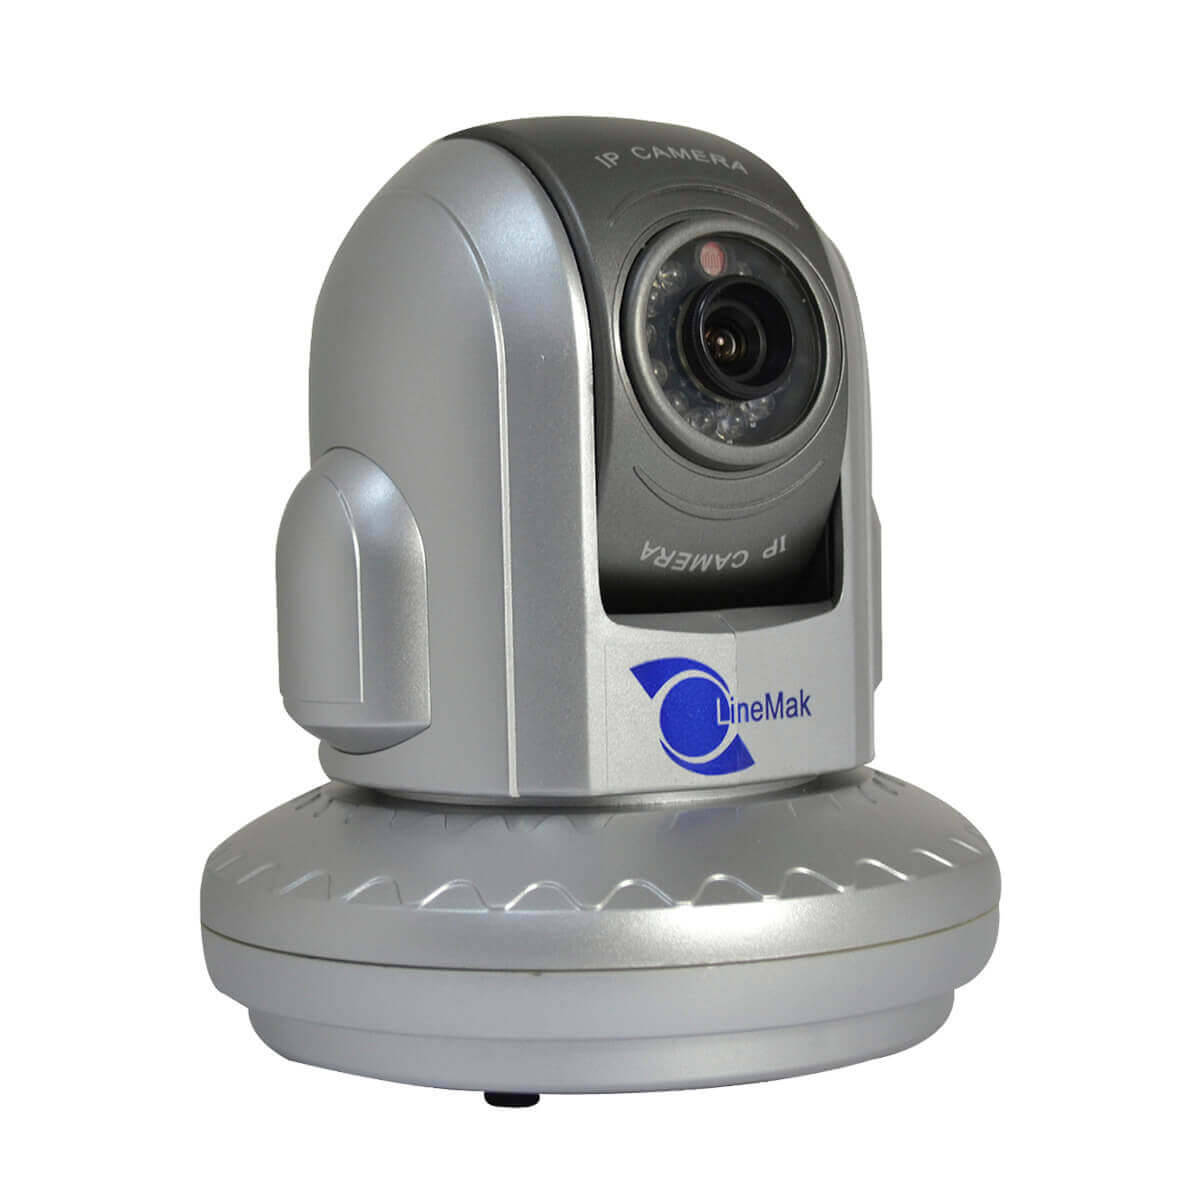 Camara IP motorizada de interiores, 1/3 CMOS 400TV, lente de 6mm, 12 LEDs